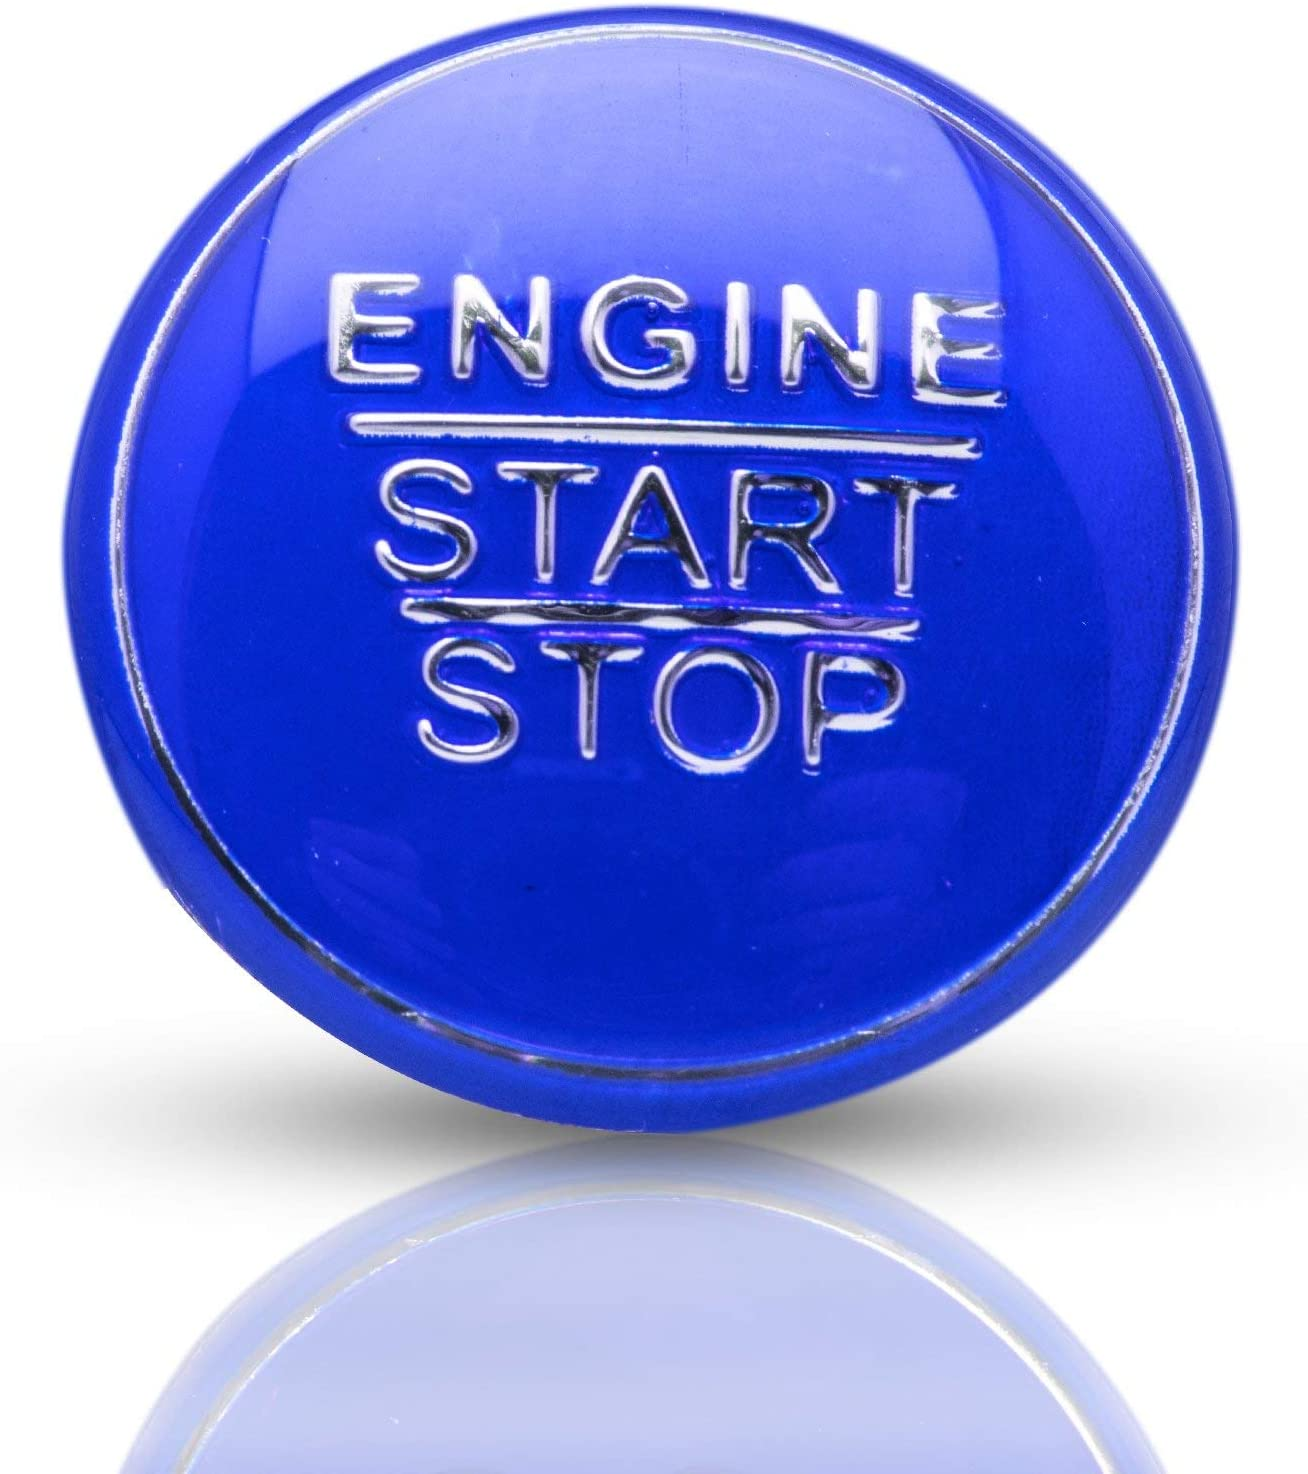 Xotic Tech Blue Car Engine Start Stop Button Cover Keyless Go Ignition Decor Stickers for Toyota Camry Corolla Prius Avalon Yaris Avensis